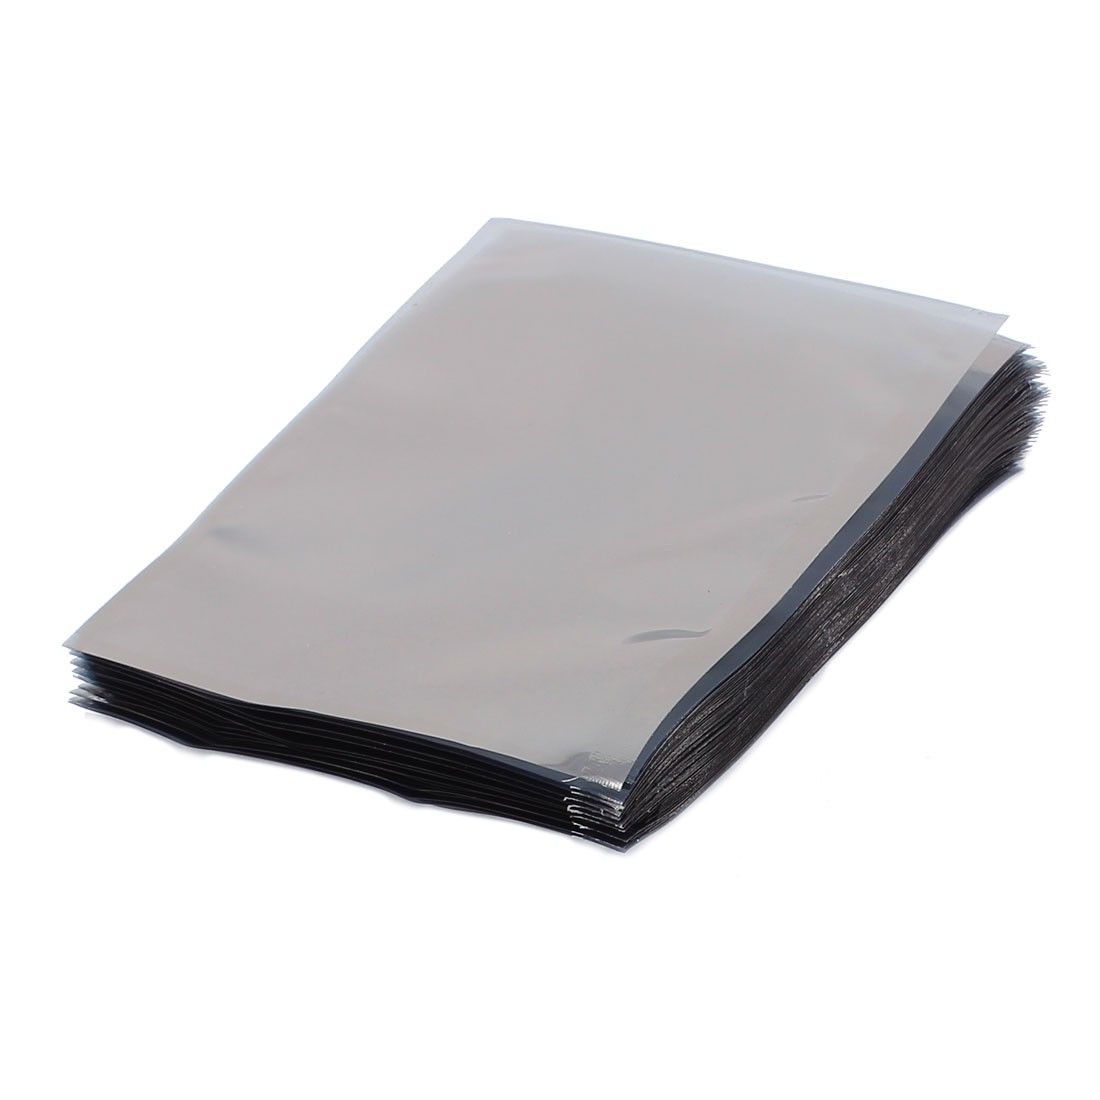 100 Pcs 100mm x 120mm Silver Tone Flat Open Top Anti Static Bag For Electronics